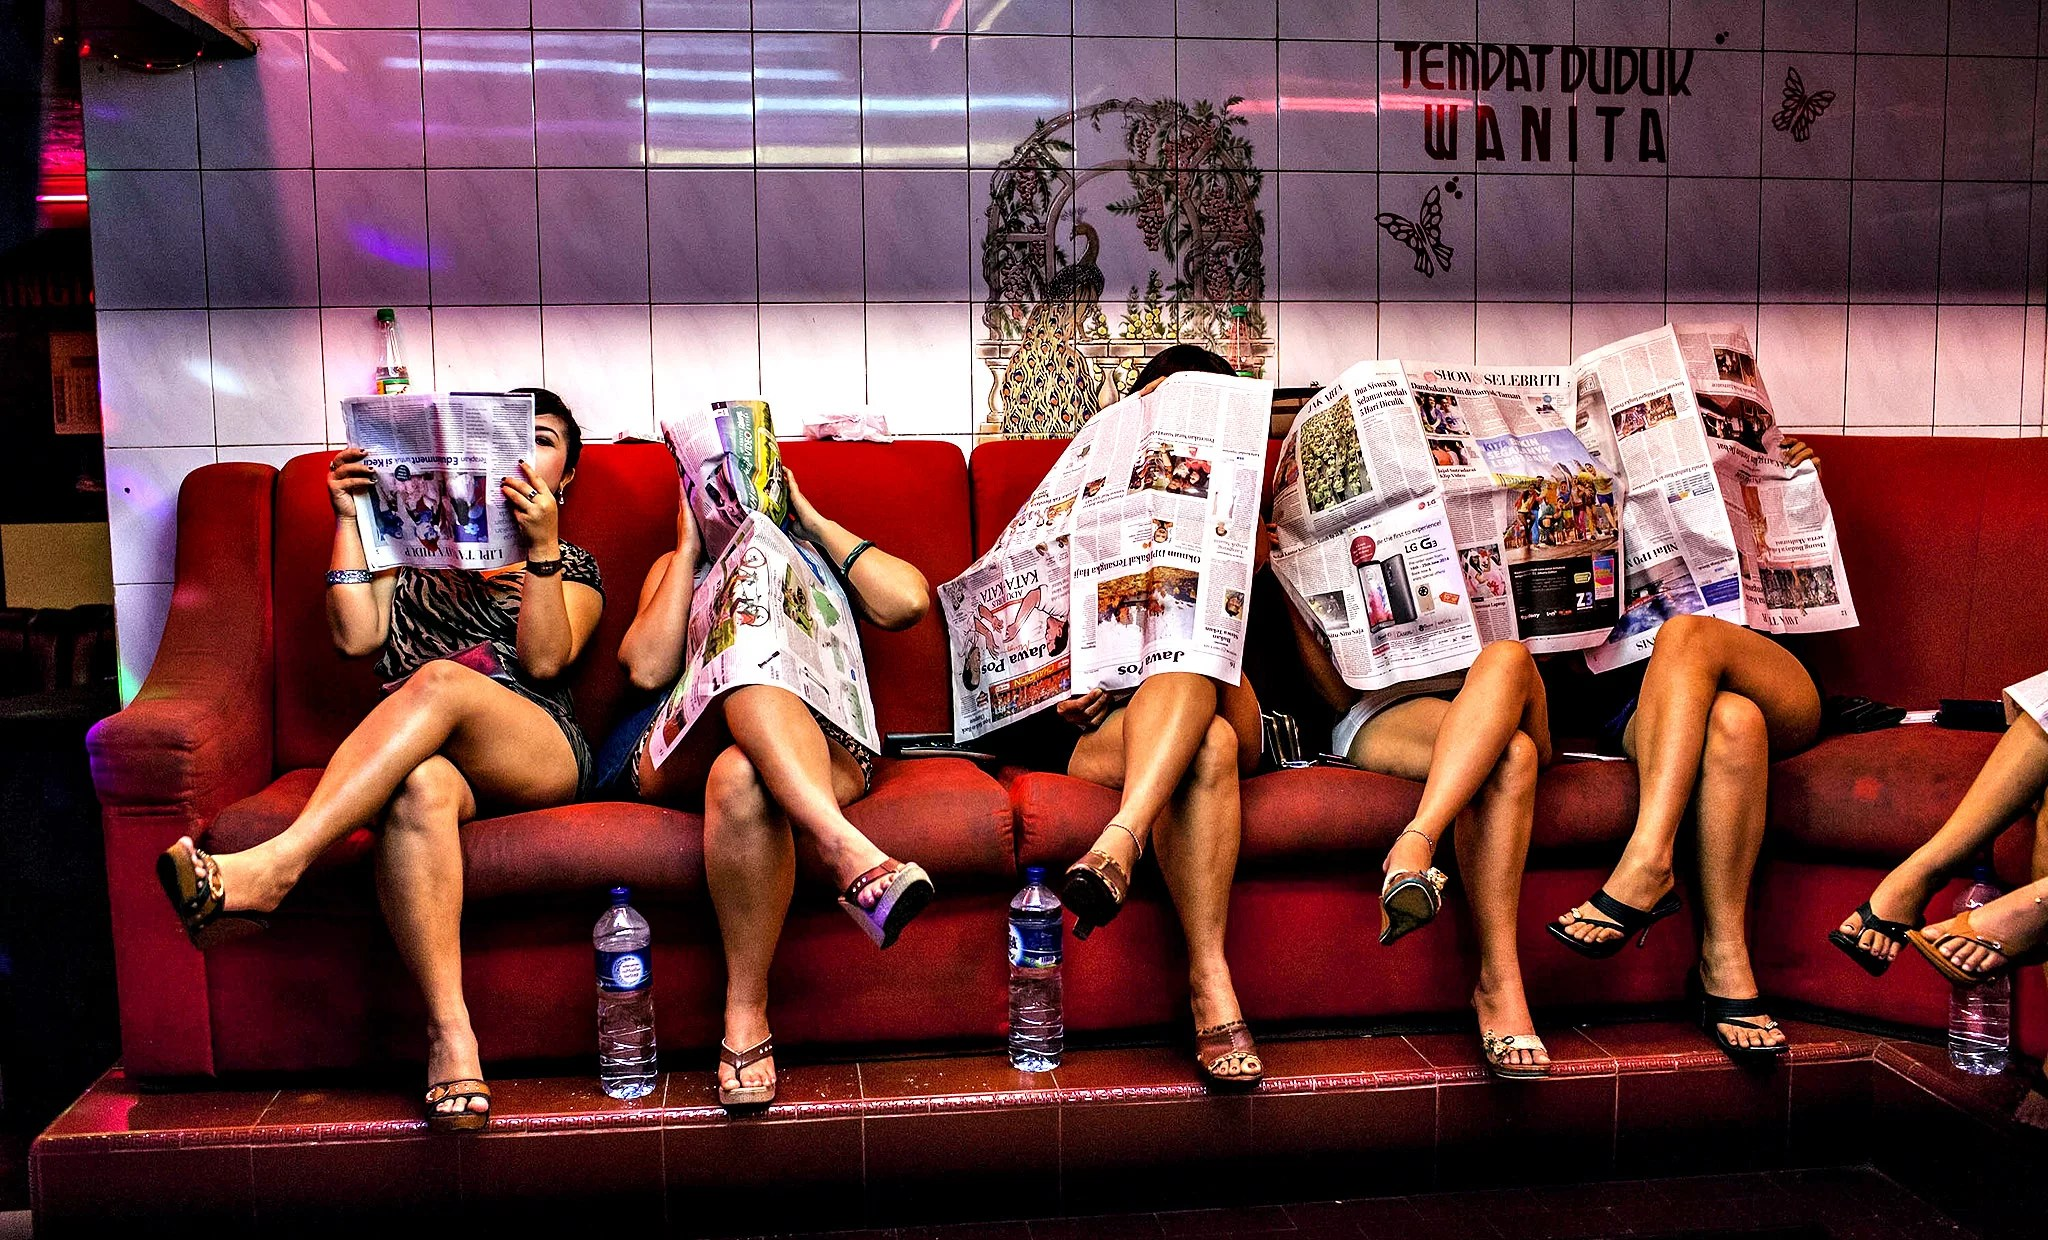 """""""Dolly"""" Brothel Remains Open Despite Closure Of Red-Light District...SURABAYA, INDONESIA - JUNE 20: Indonesian commercial female sex workers cover their face sit lined up behind the glass inside a brothel as the activity still runs after being closed by Surabaya's new Mayor at 'Dolly' red-light district on June 20, 2014 in Surabaya, Indonesia. Despite protests by some local residents and sex-workers, Surabaya's new Mayor, Tri Rismaharini closed the 'Dolly' and neighbouring 'Jarak' red-light district in Surabaya, Indonesia's second-largest city, on Wednesday. Many of the community support the end of sex trade in Dolly's streets, with some Islamic groups reportedly threatening violence should the brothels not remain closed. (Photo by Ulet Ifansasti/Getty Images)"""